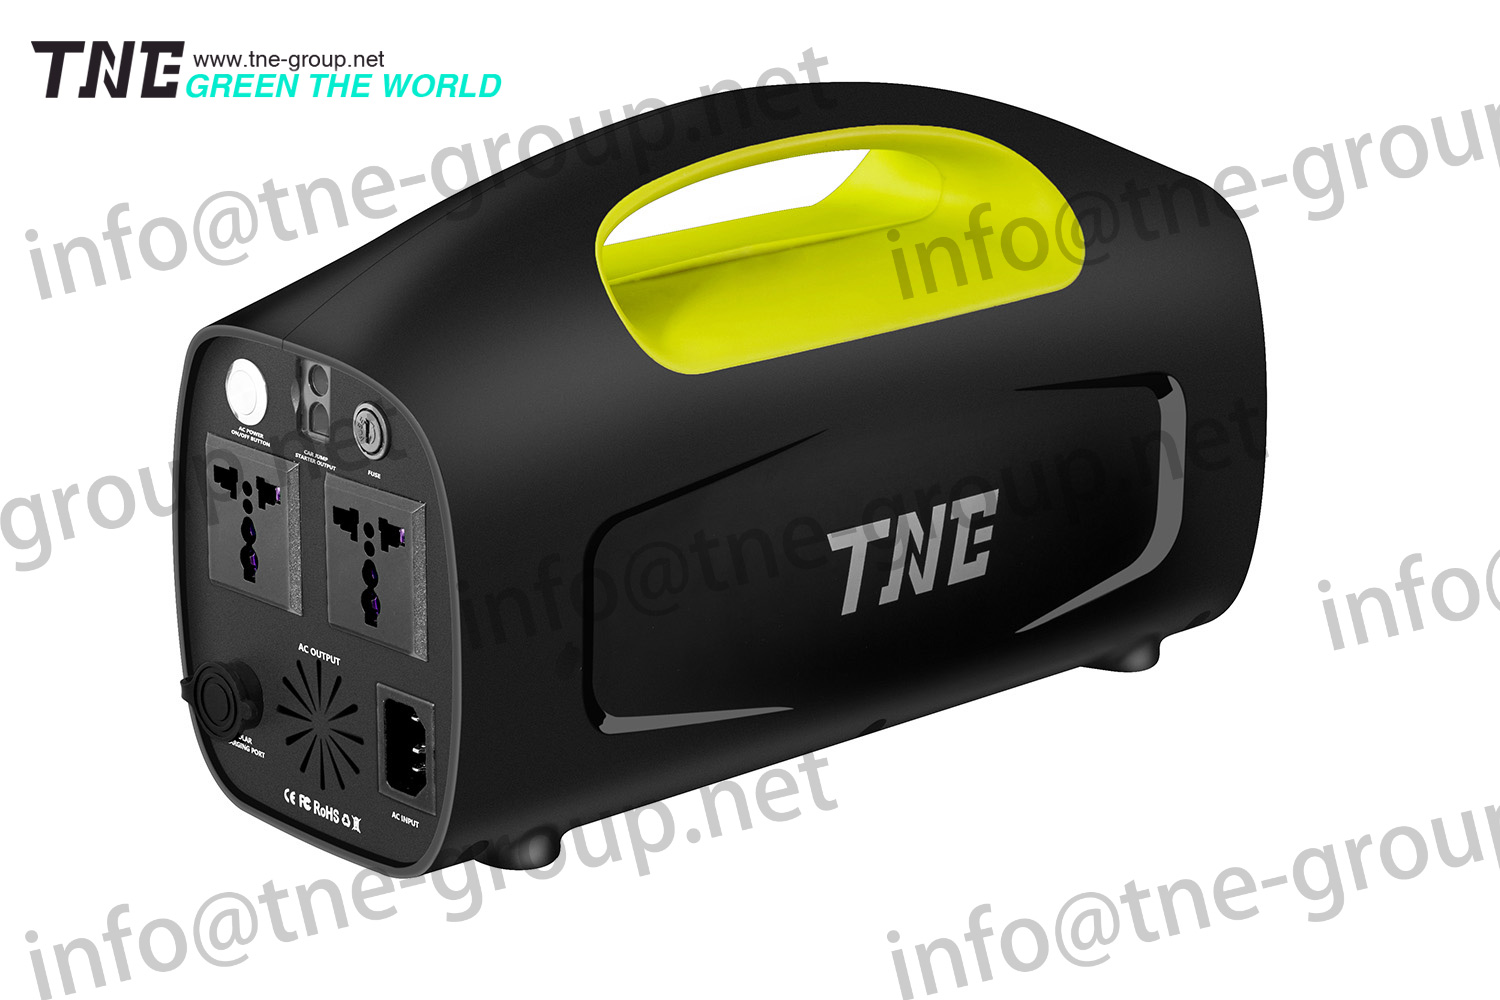 TNE smart ups 5kva 220v made in china